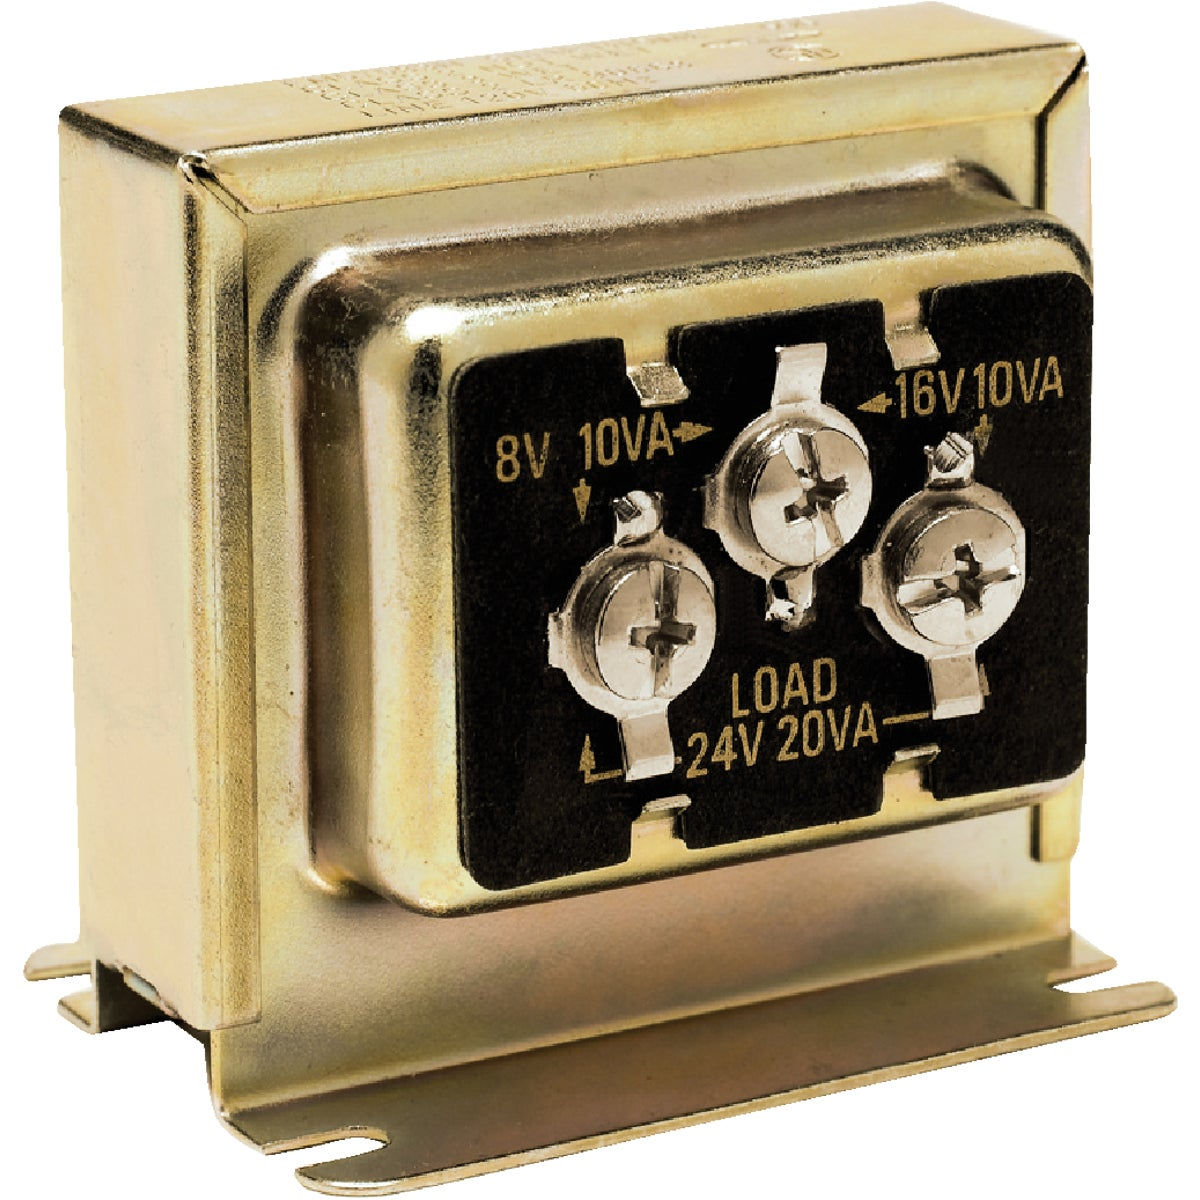 8V/16V/24V TRANSFORMER - DH910 by Thomas & Betts